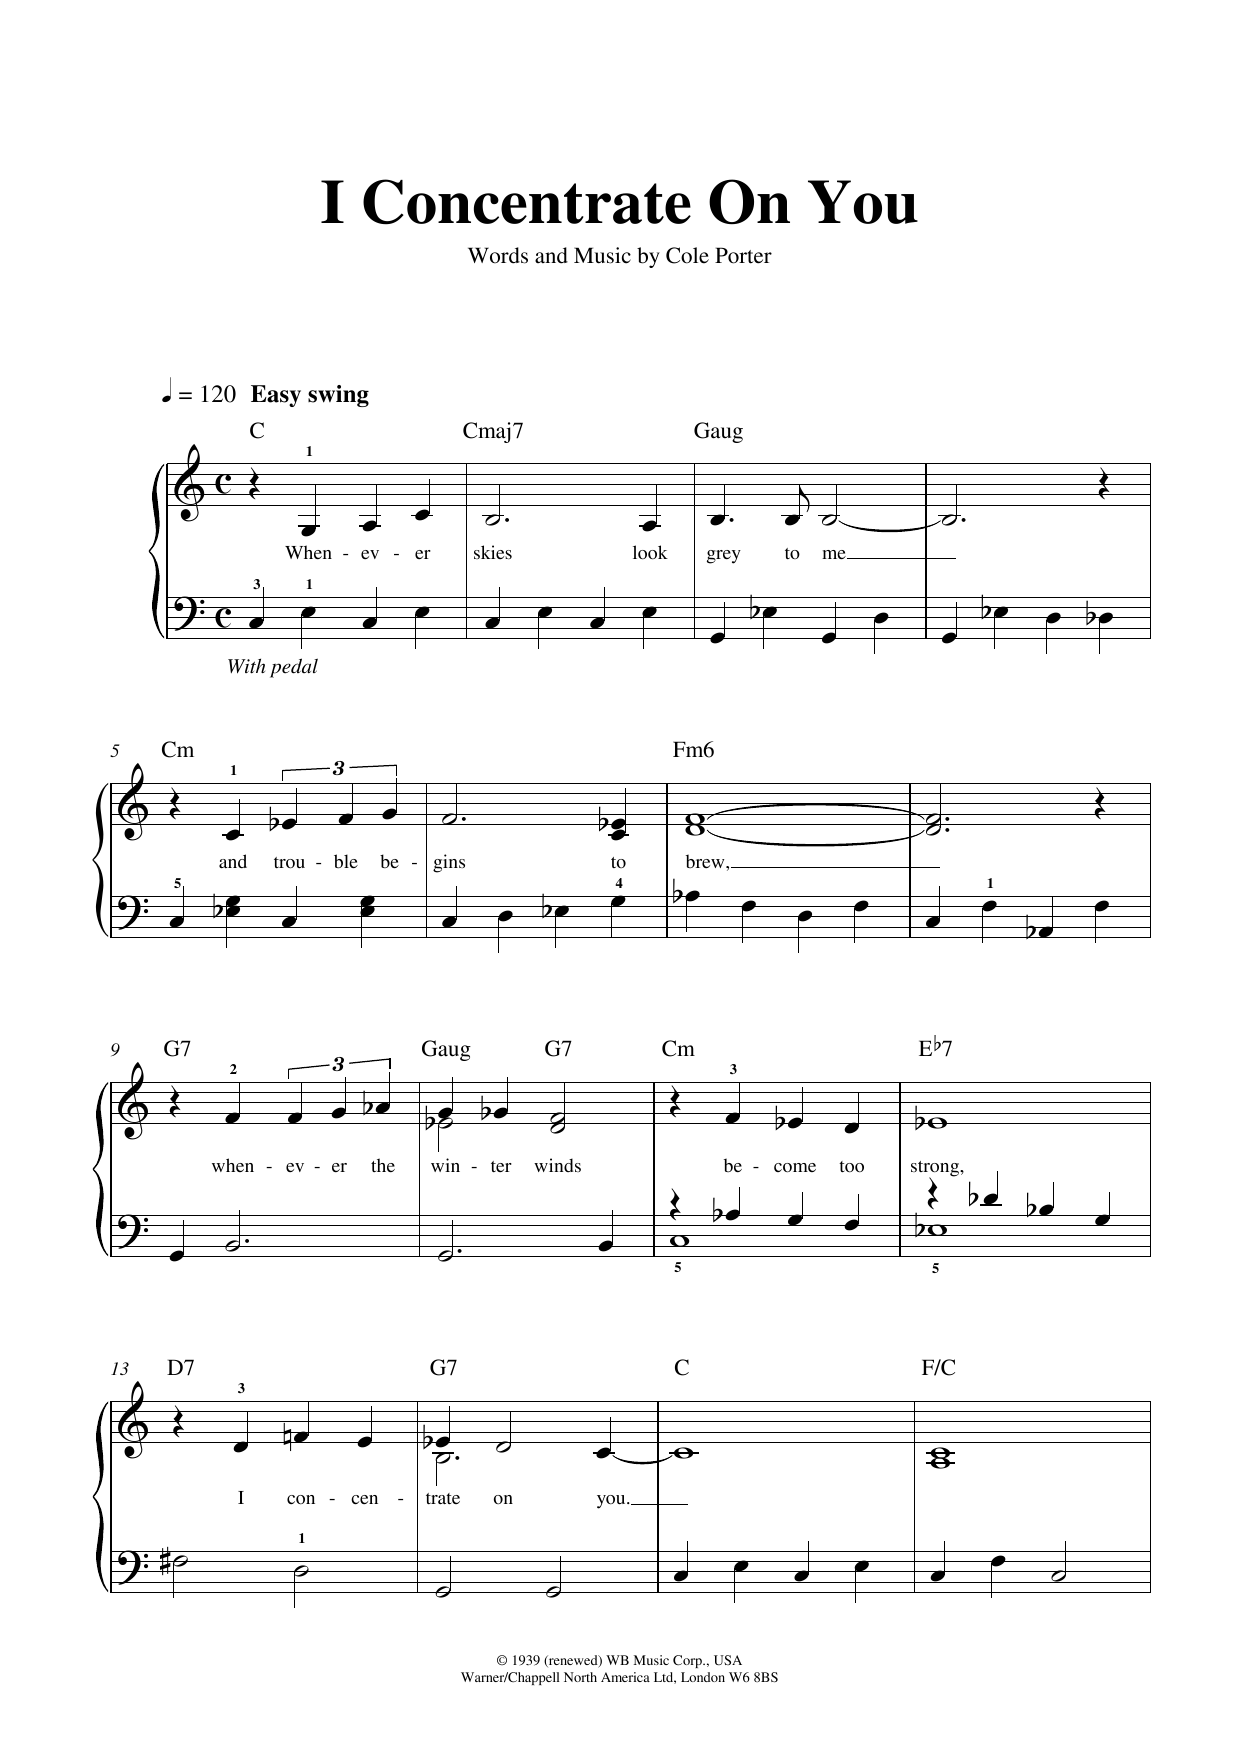 I Concentrate On You Sheet Music